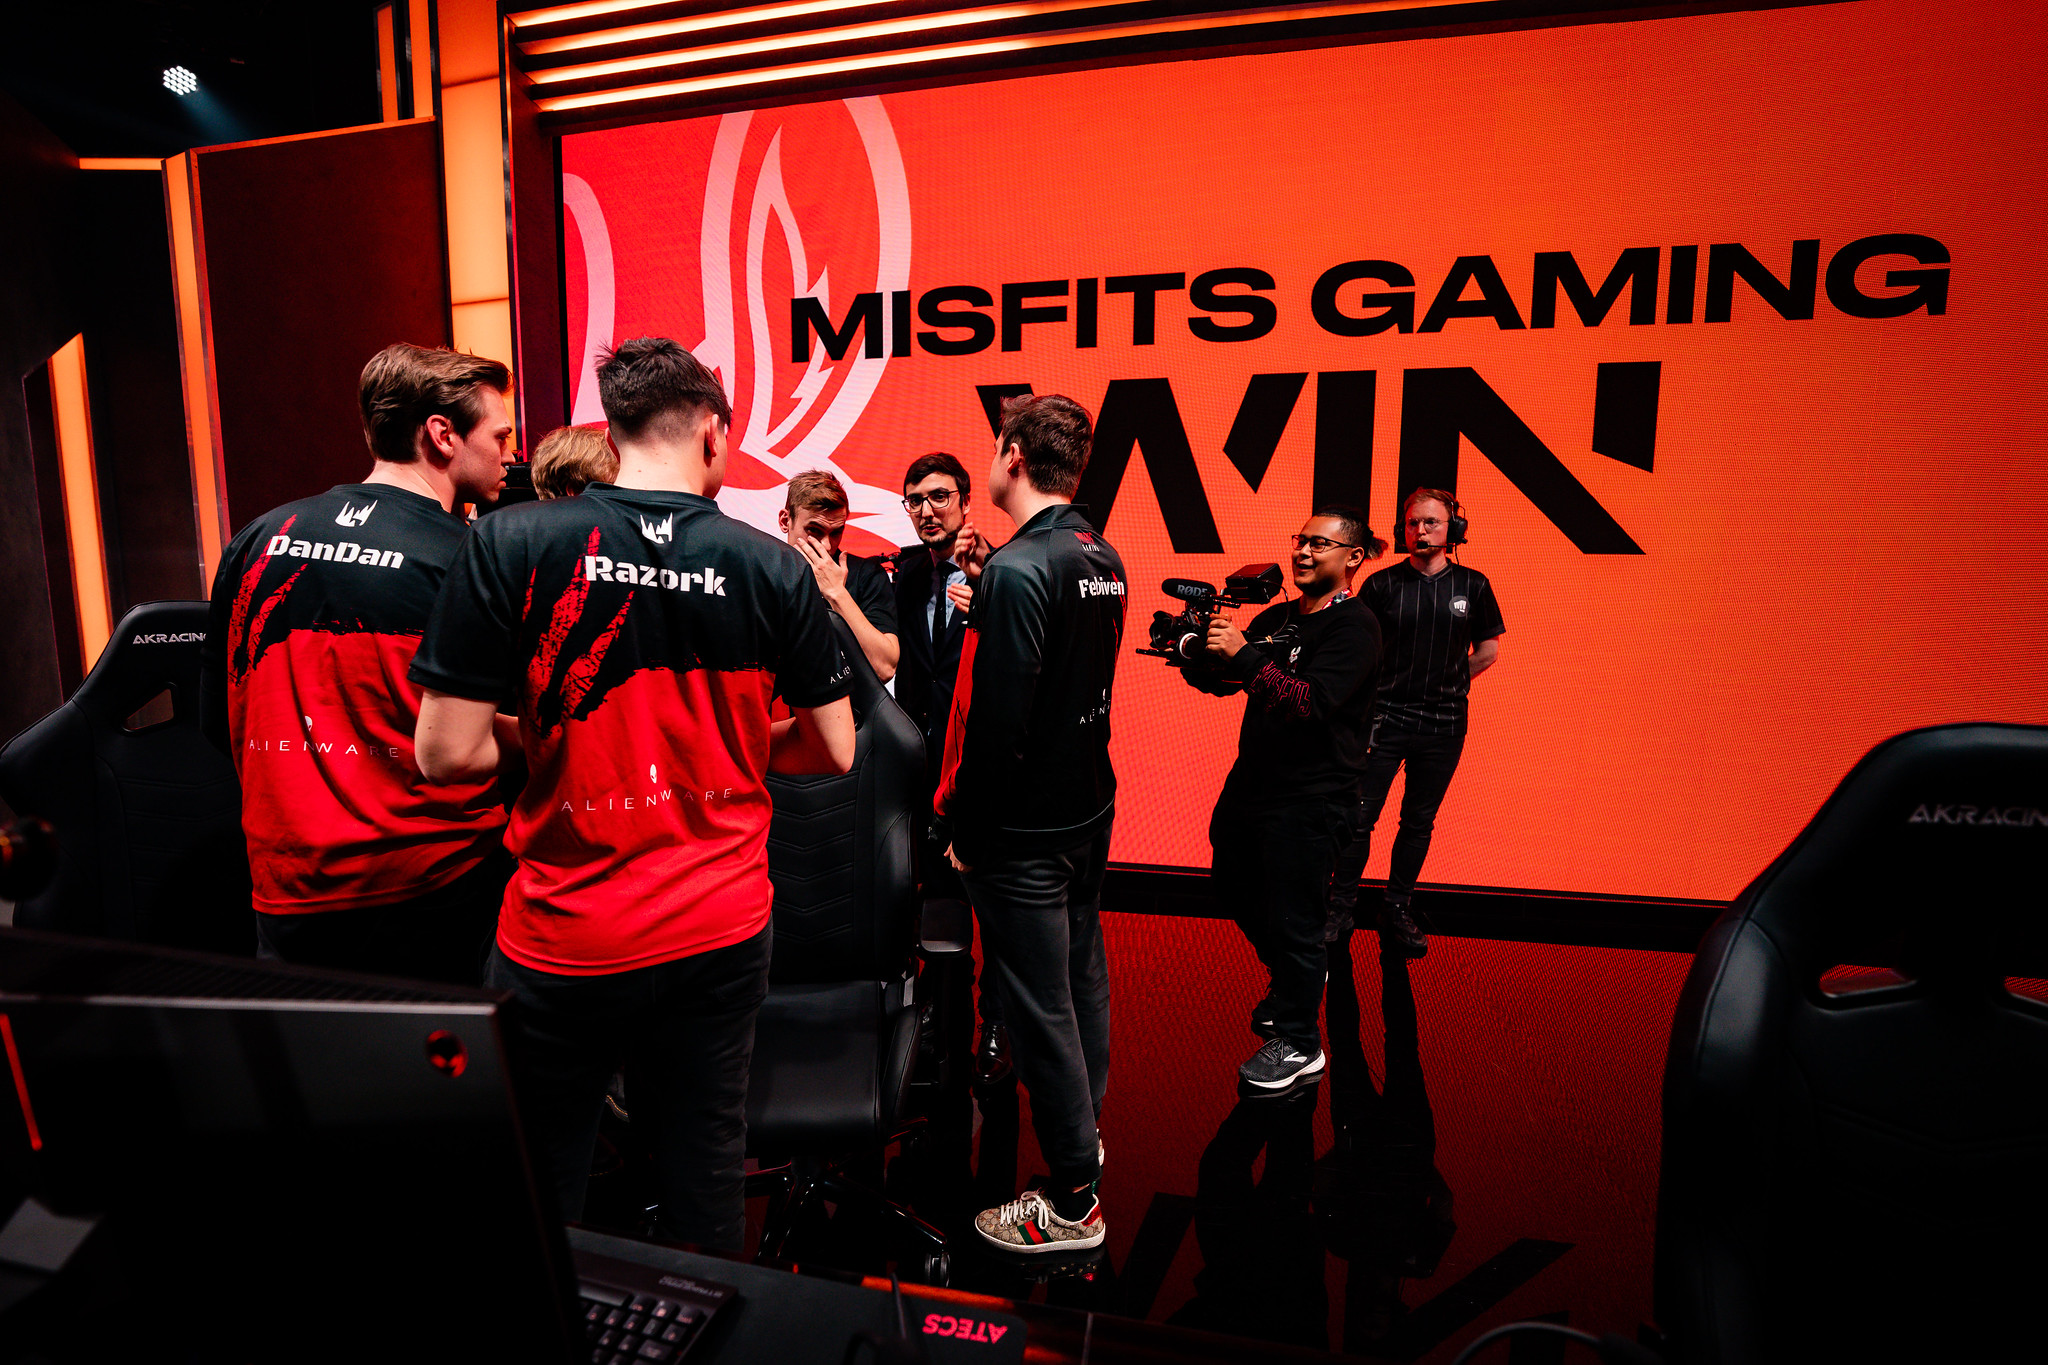 Misfits promotes Doss to starting LEC roster